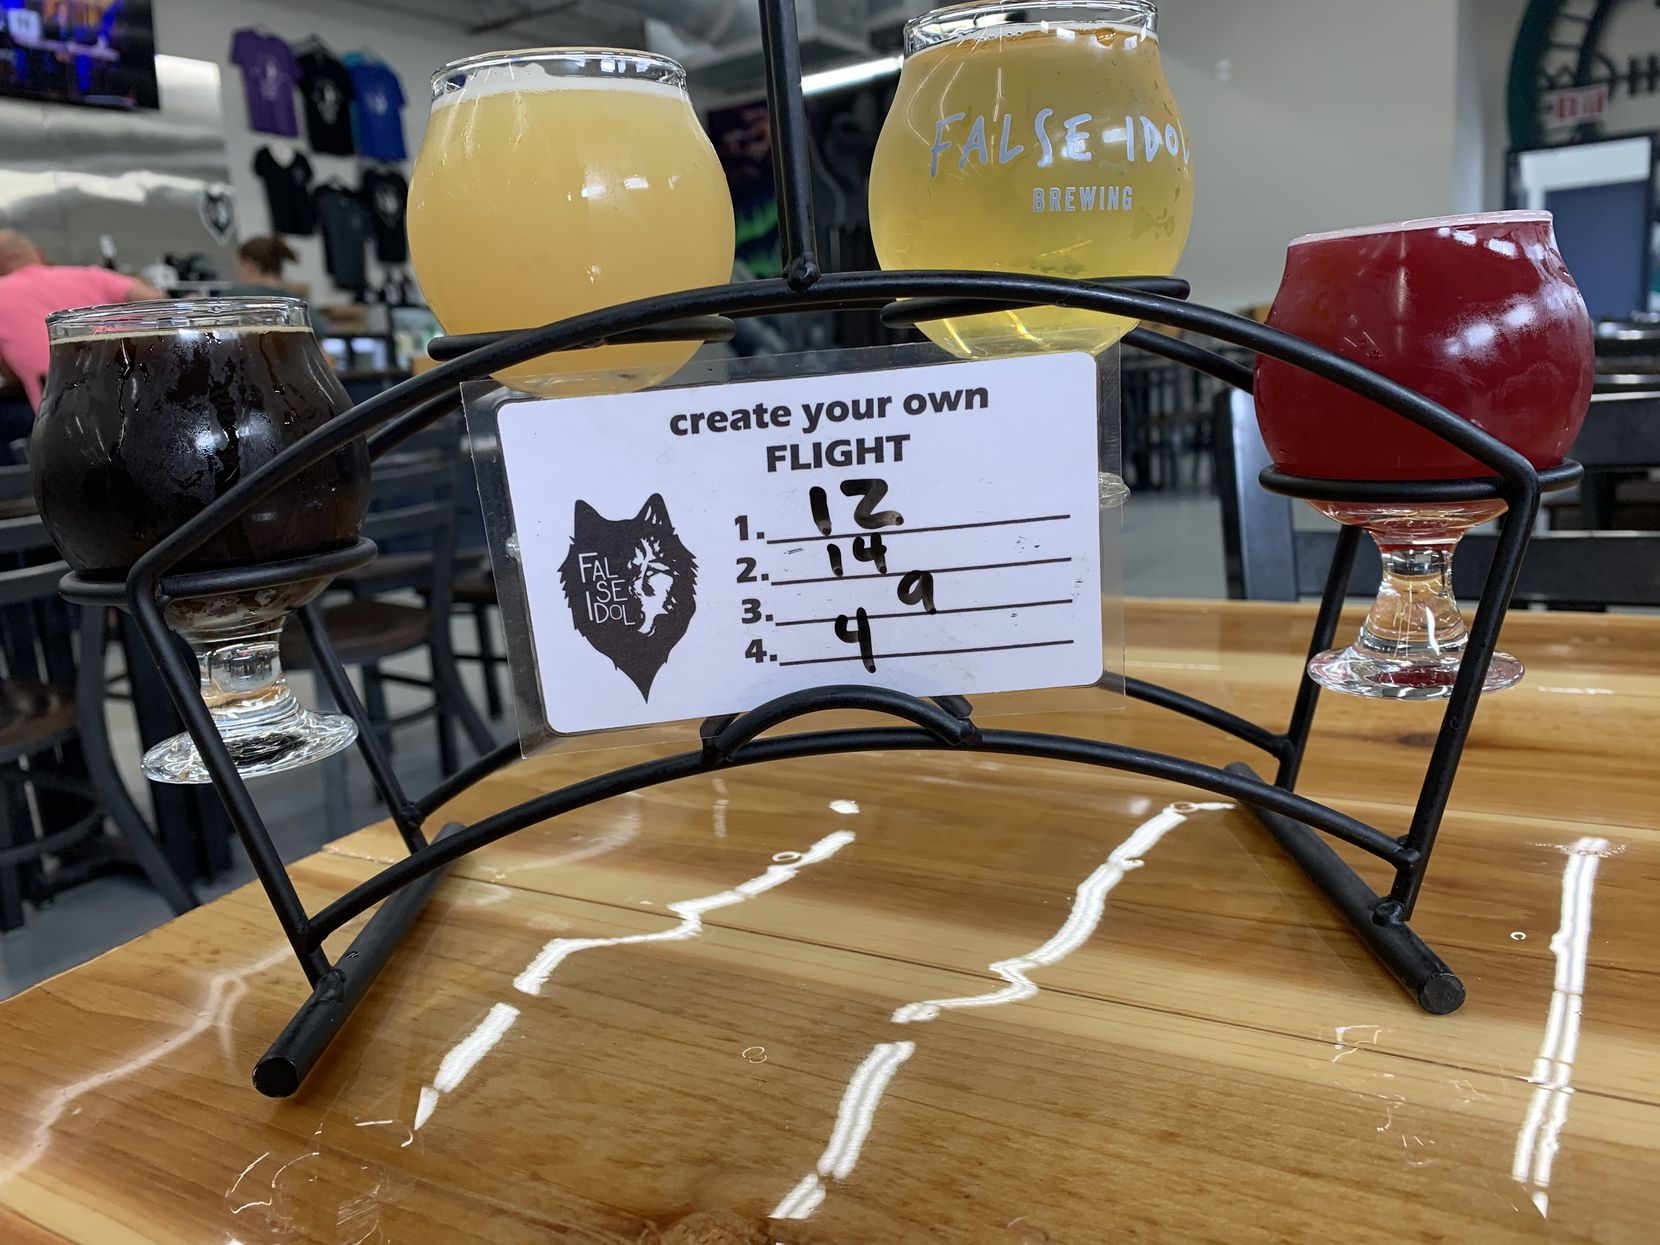 False Idol Brewing is located in North Richland Hills